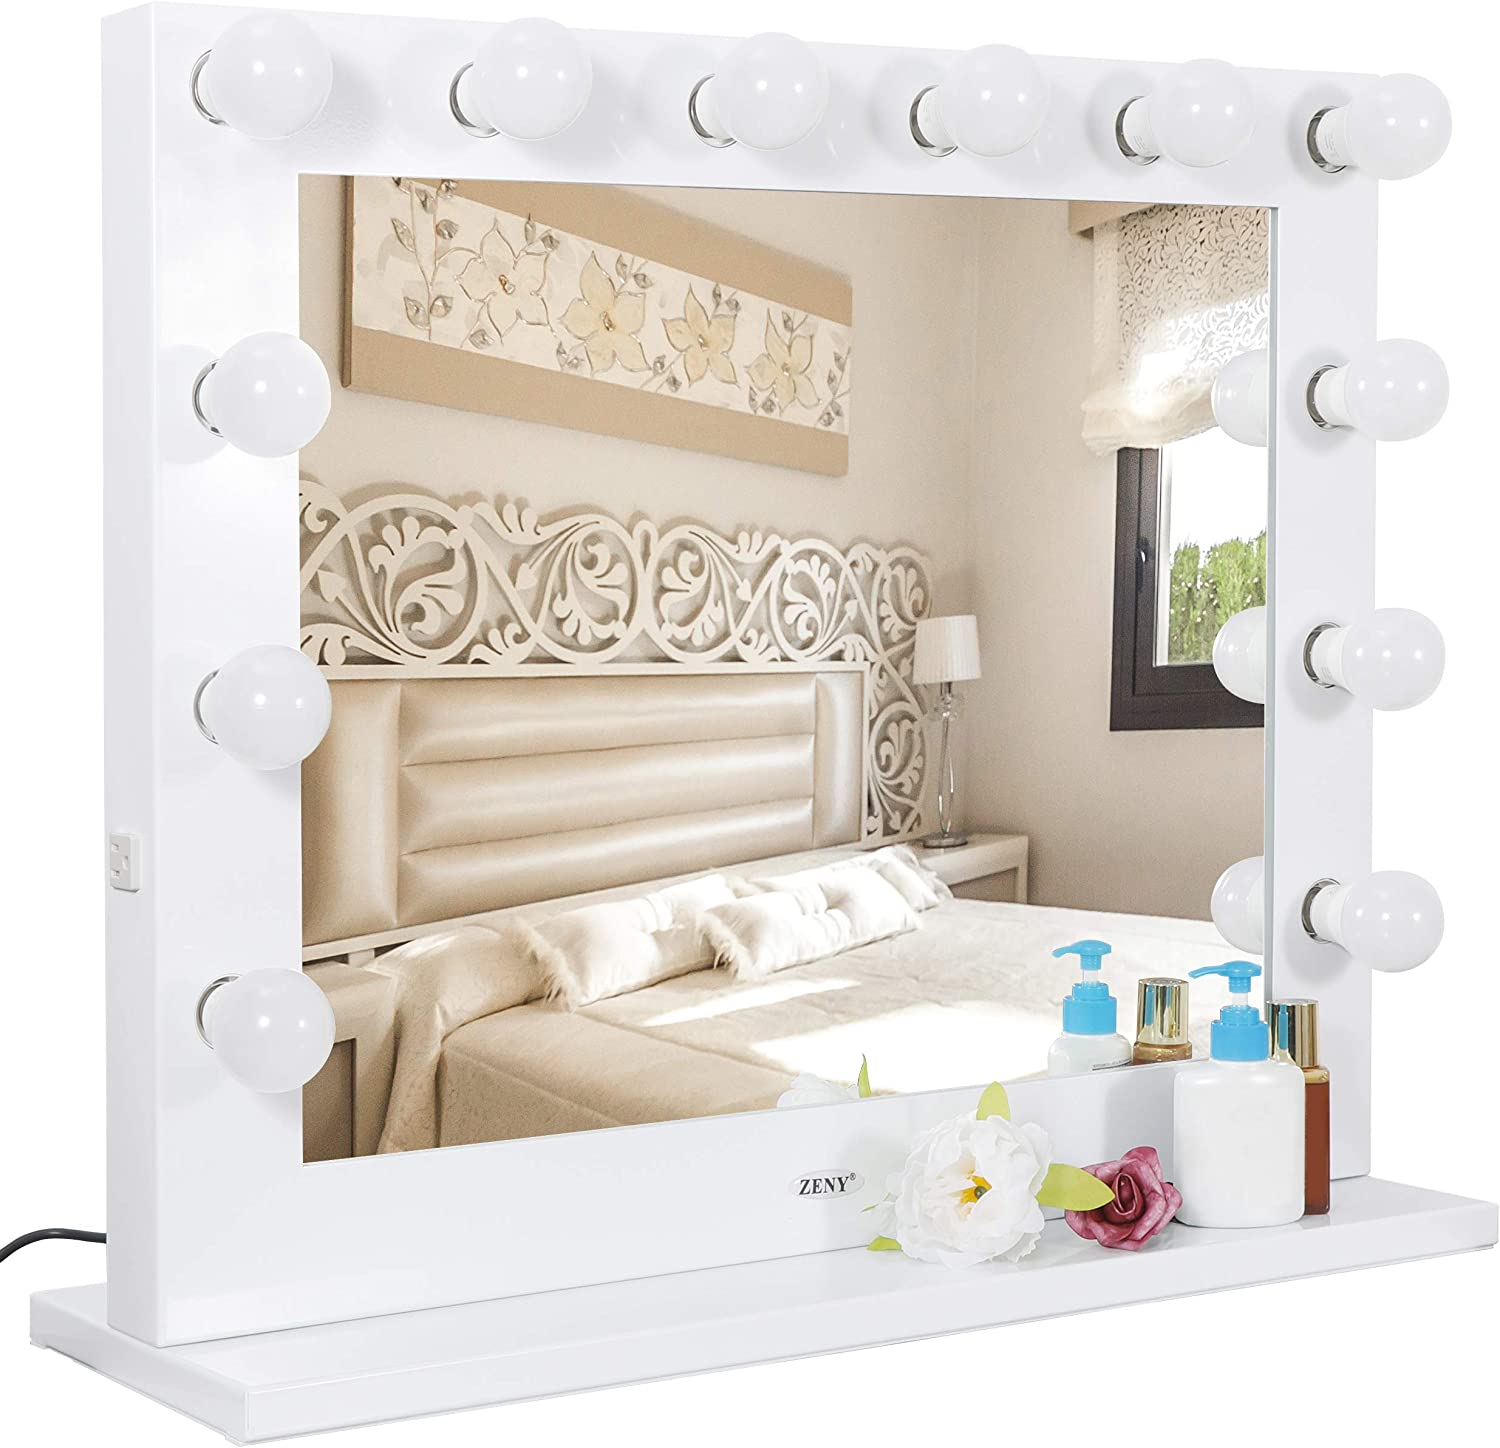 SUPER DEAL Makeup Vanity Mirror With Lights Reviews